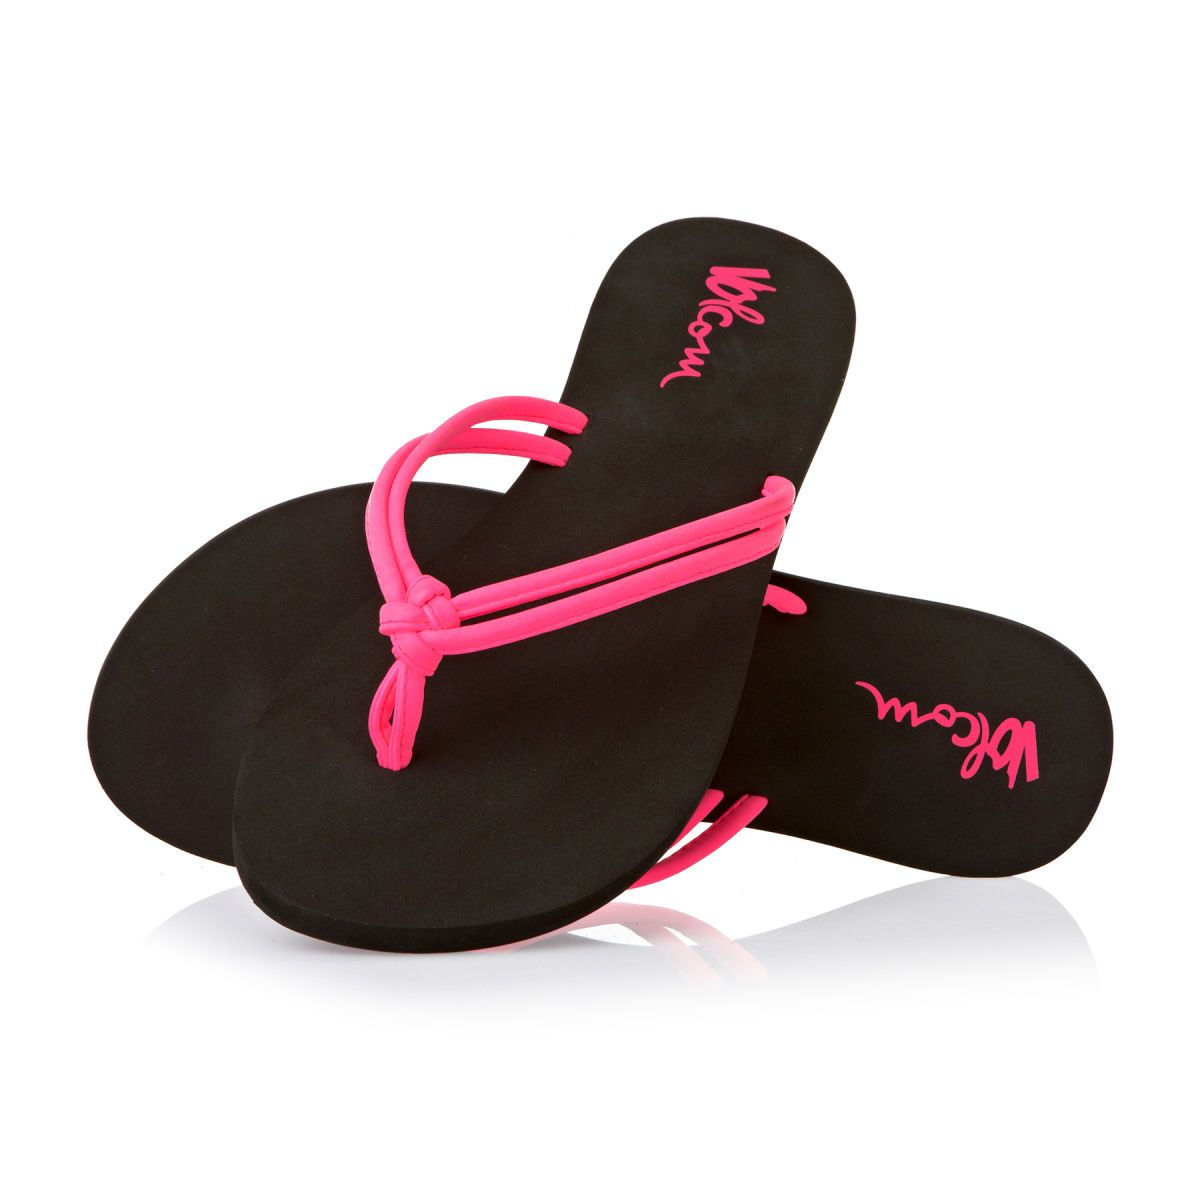 Volcom Forever And Ever Flip Flops Neon Pink Volcom Women Flip Flops Neon Pink